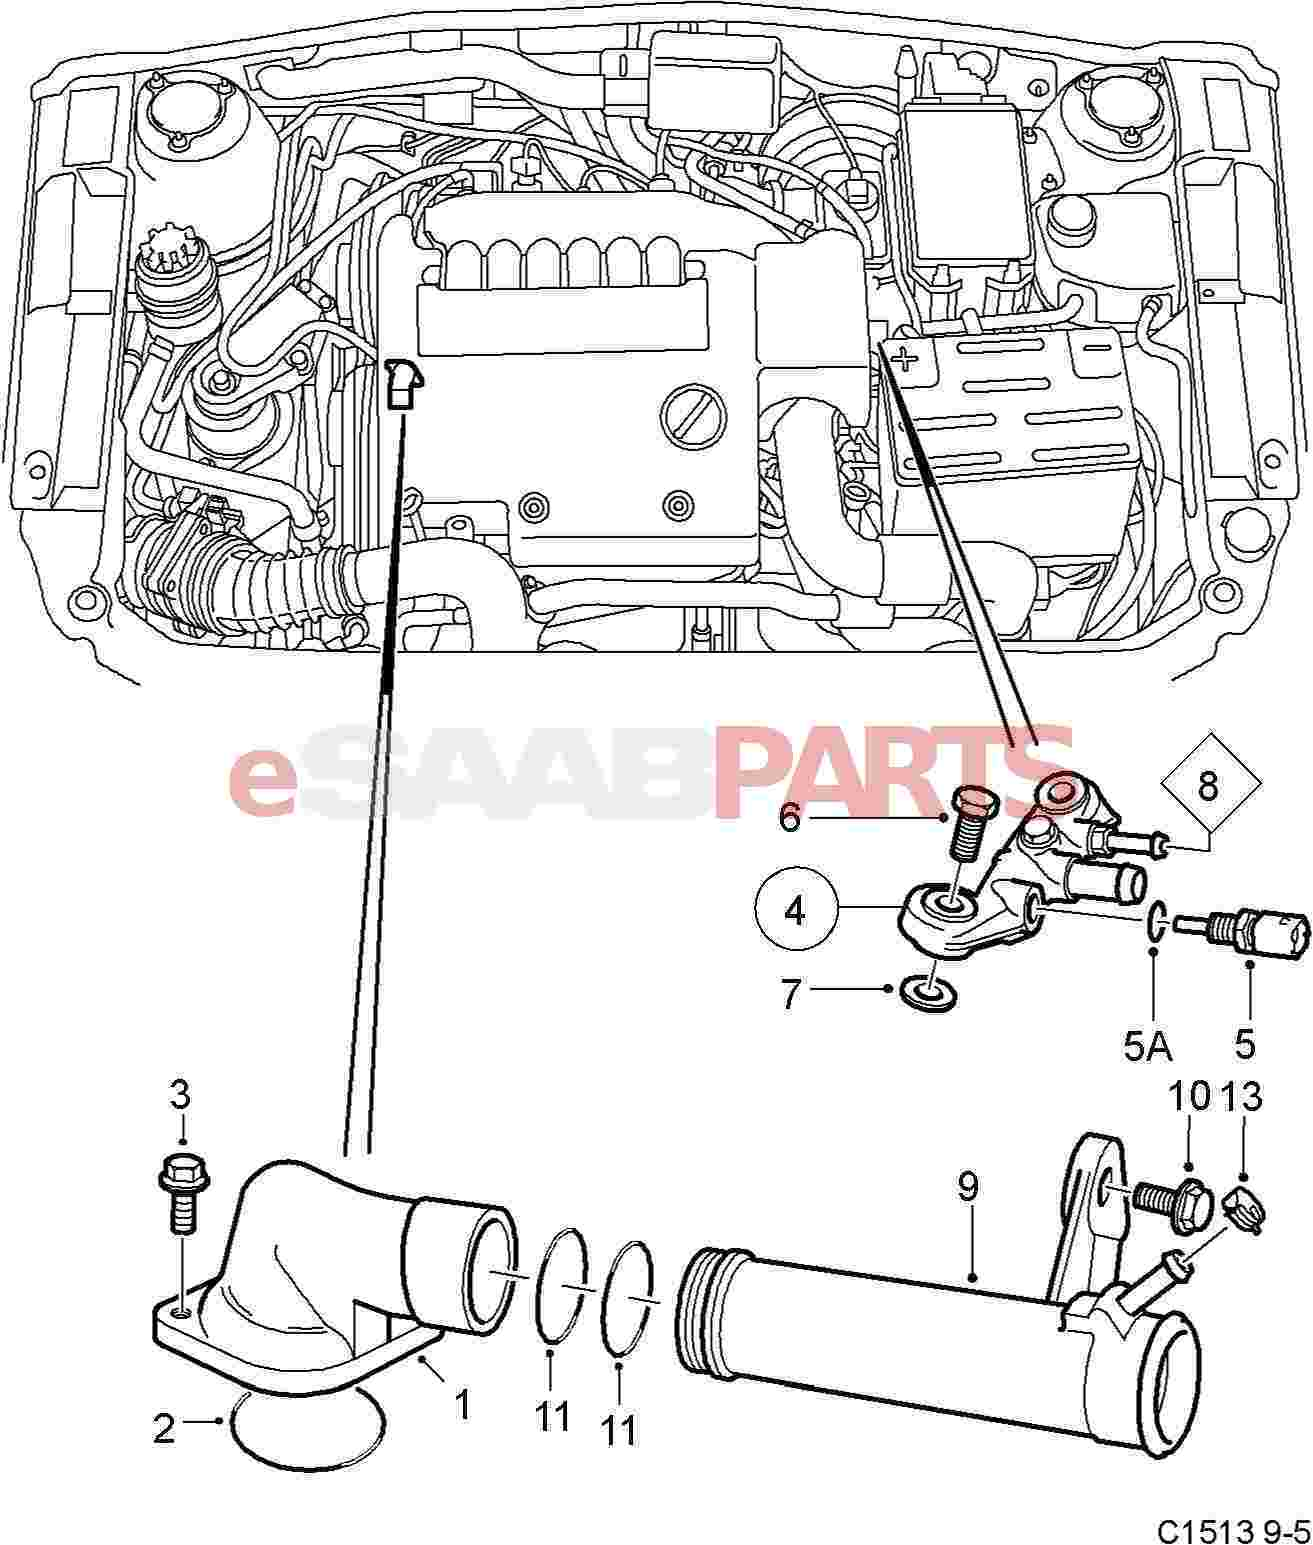 eSaabParts.com - Saab 9-5 (9600) > Engine Parts > Thermostat > Thermostat  (B308)eSaabParts.com